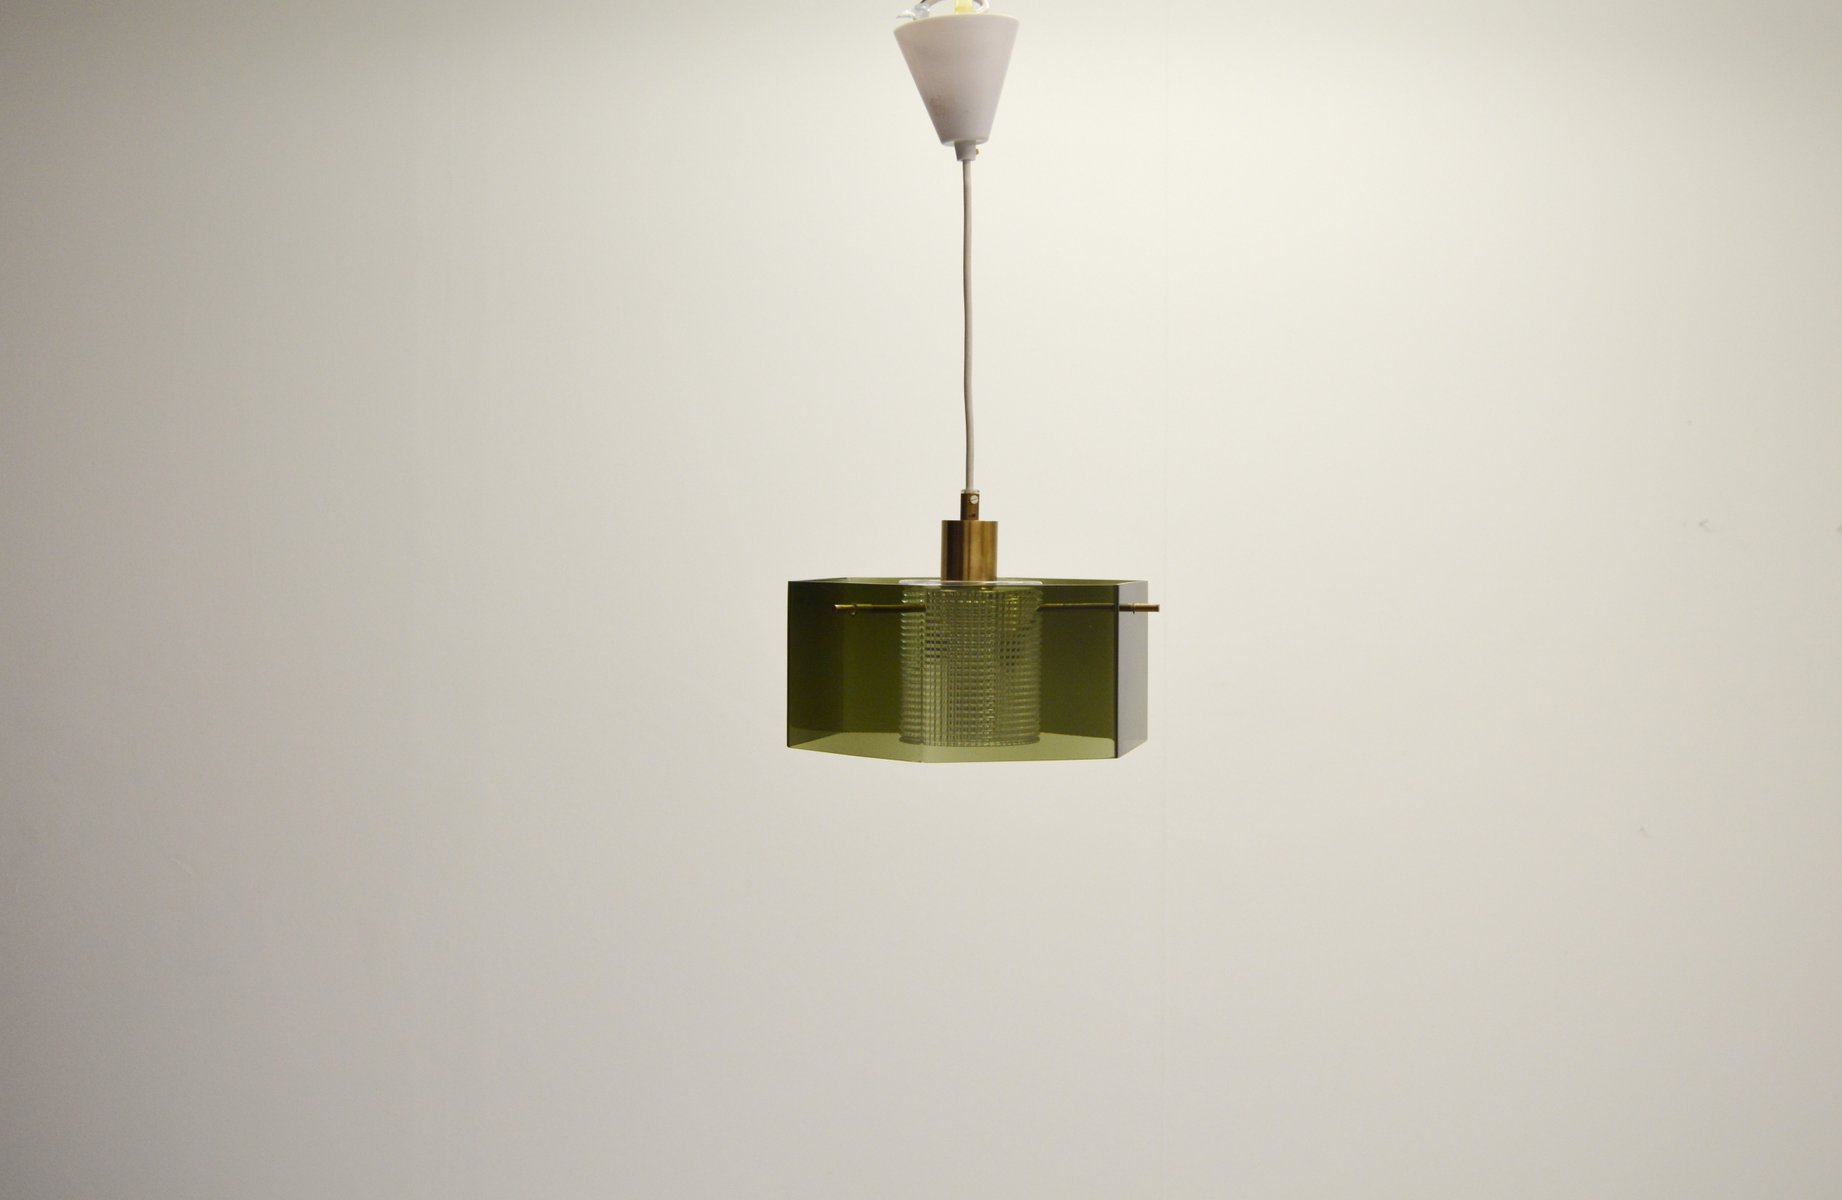 Mid century green glass ceiling light by carl fagerlund for orrefors mid century green glass ceiling light by carl fagerlund for orrefors aloadofball Image collections